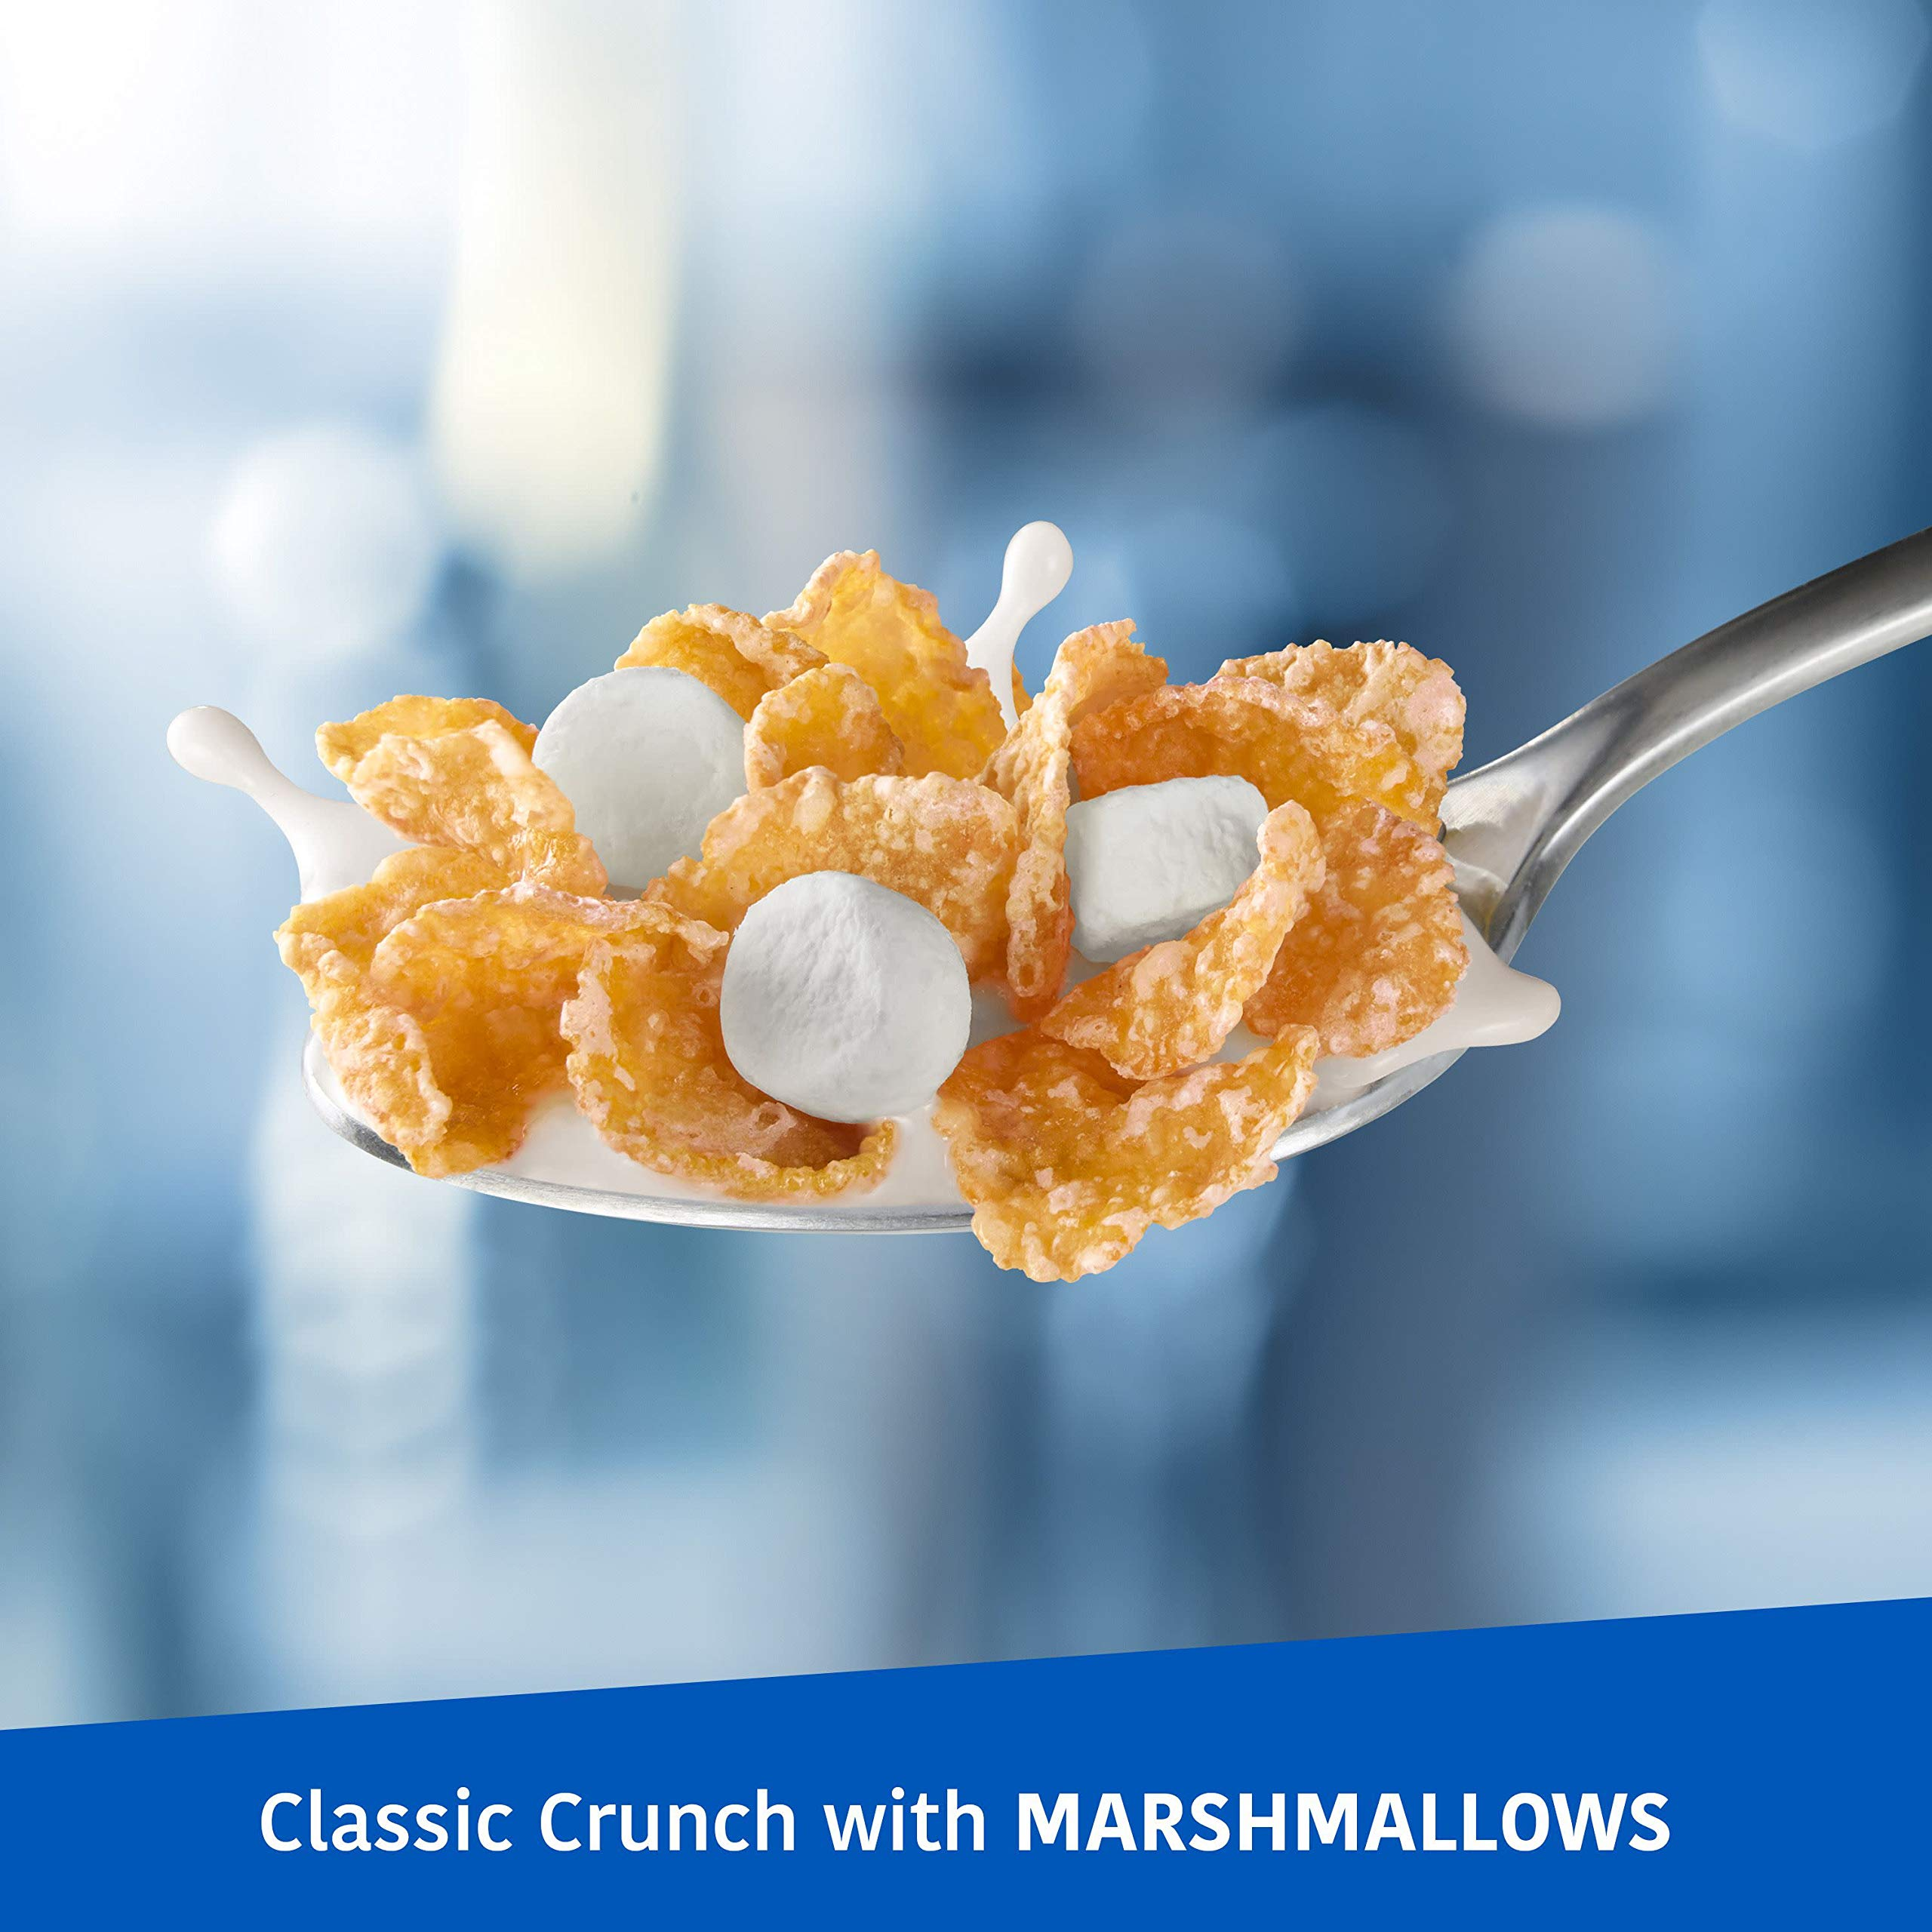 Kellogg's Breakfast Cereal, Frosted Flakes with Marshmallow, 13.6 oz Box(Pack of 12) by Kellogg's (Image #8)